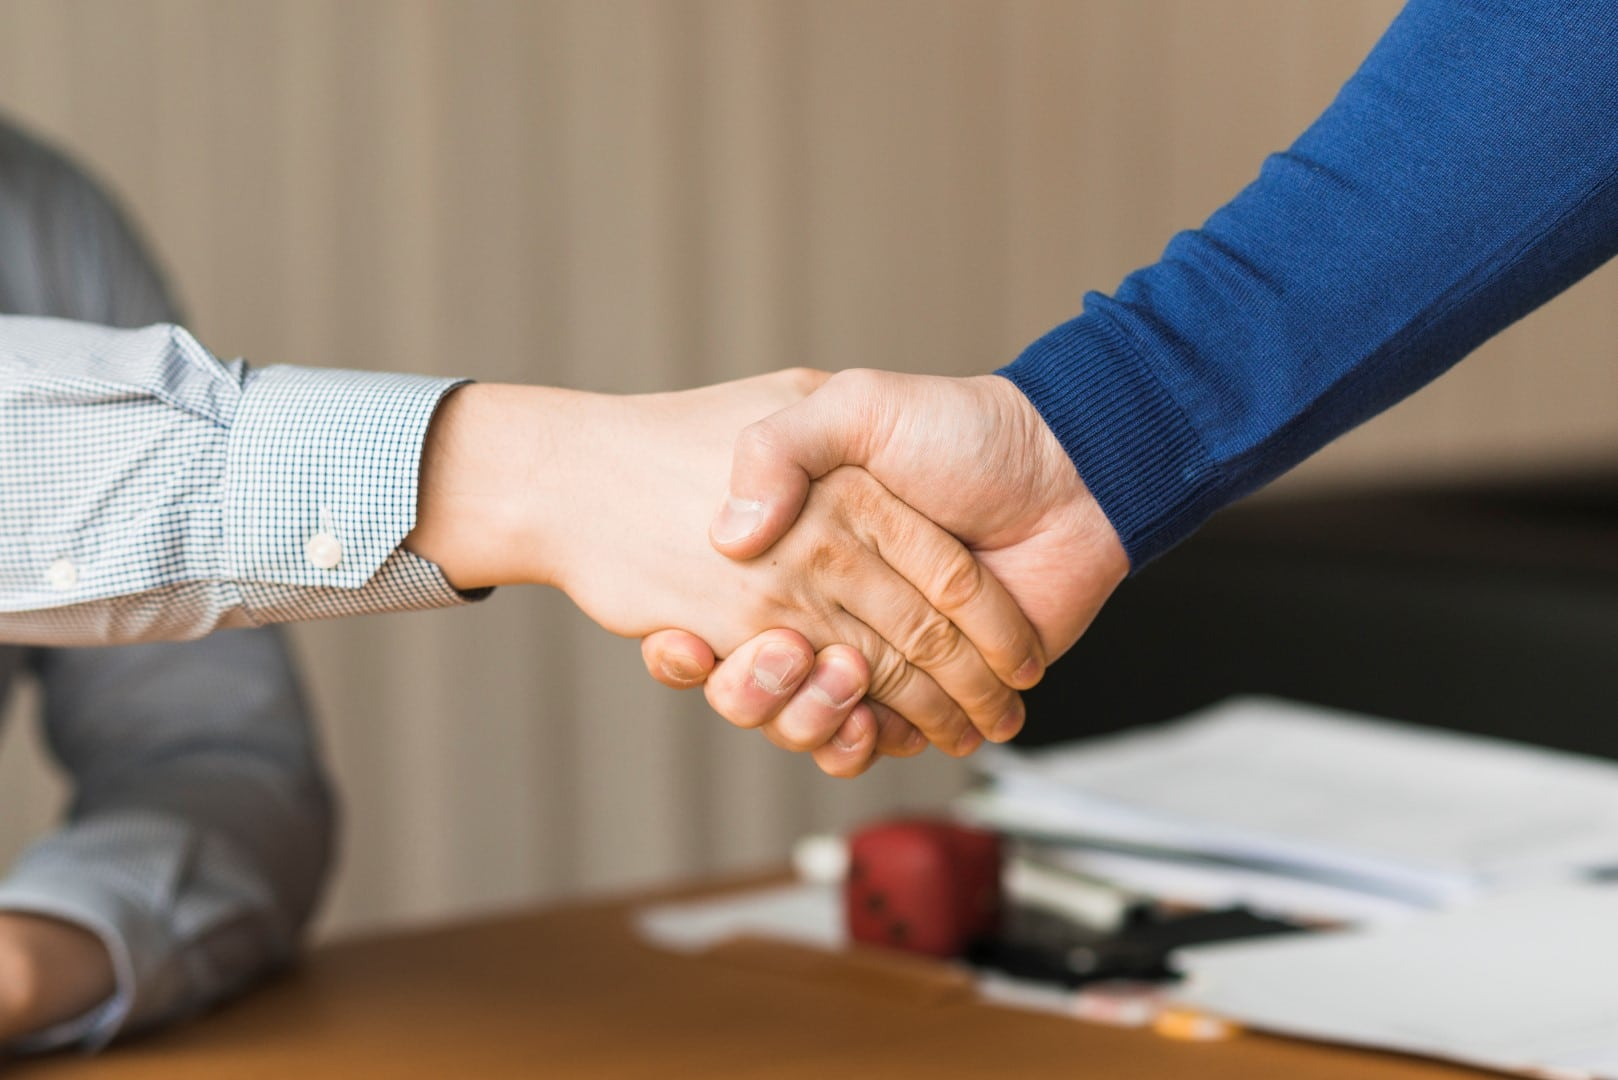 How to Gracefully Turn Down a Job Offer?